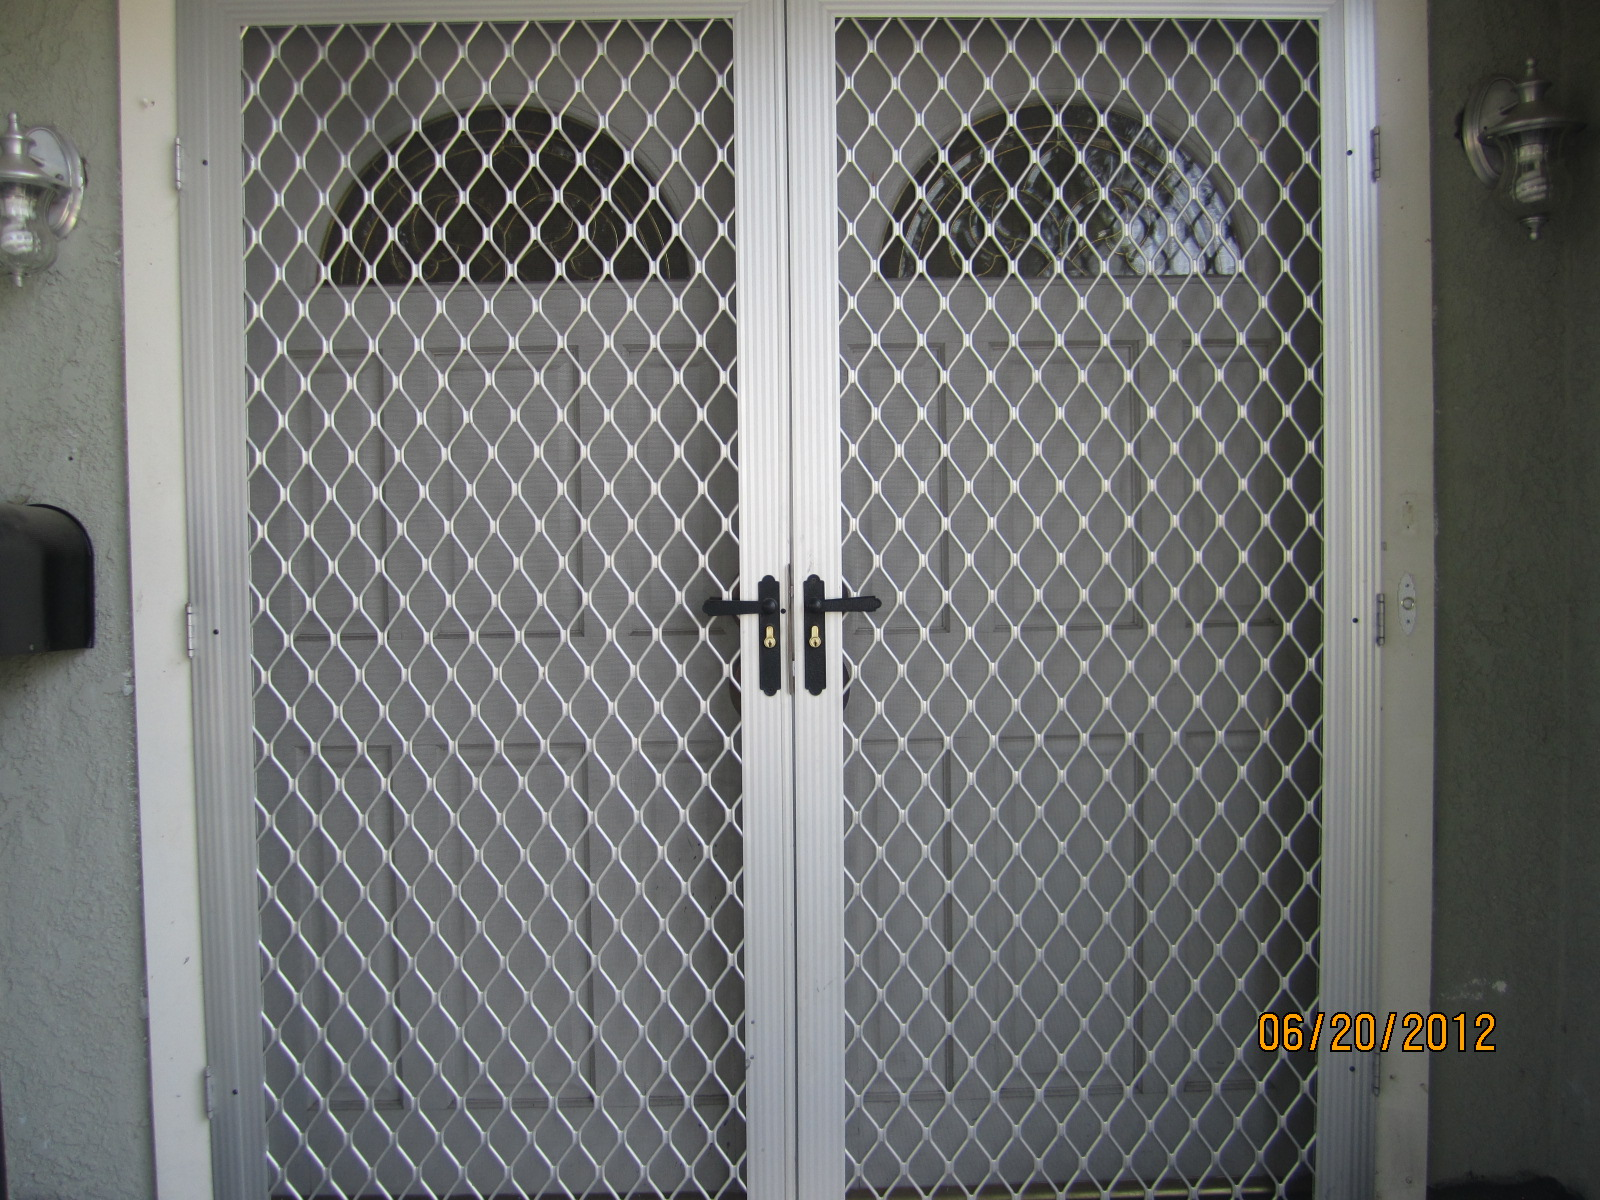 Security screen doors in sherman oaks screen doors for Security screen doors for french doors